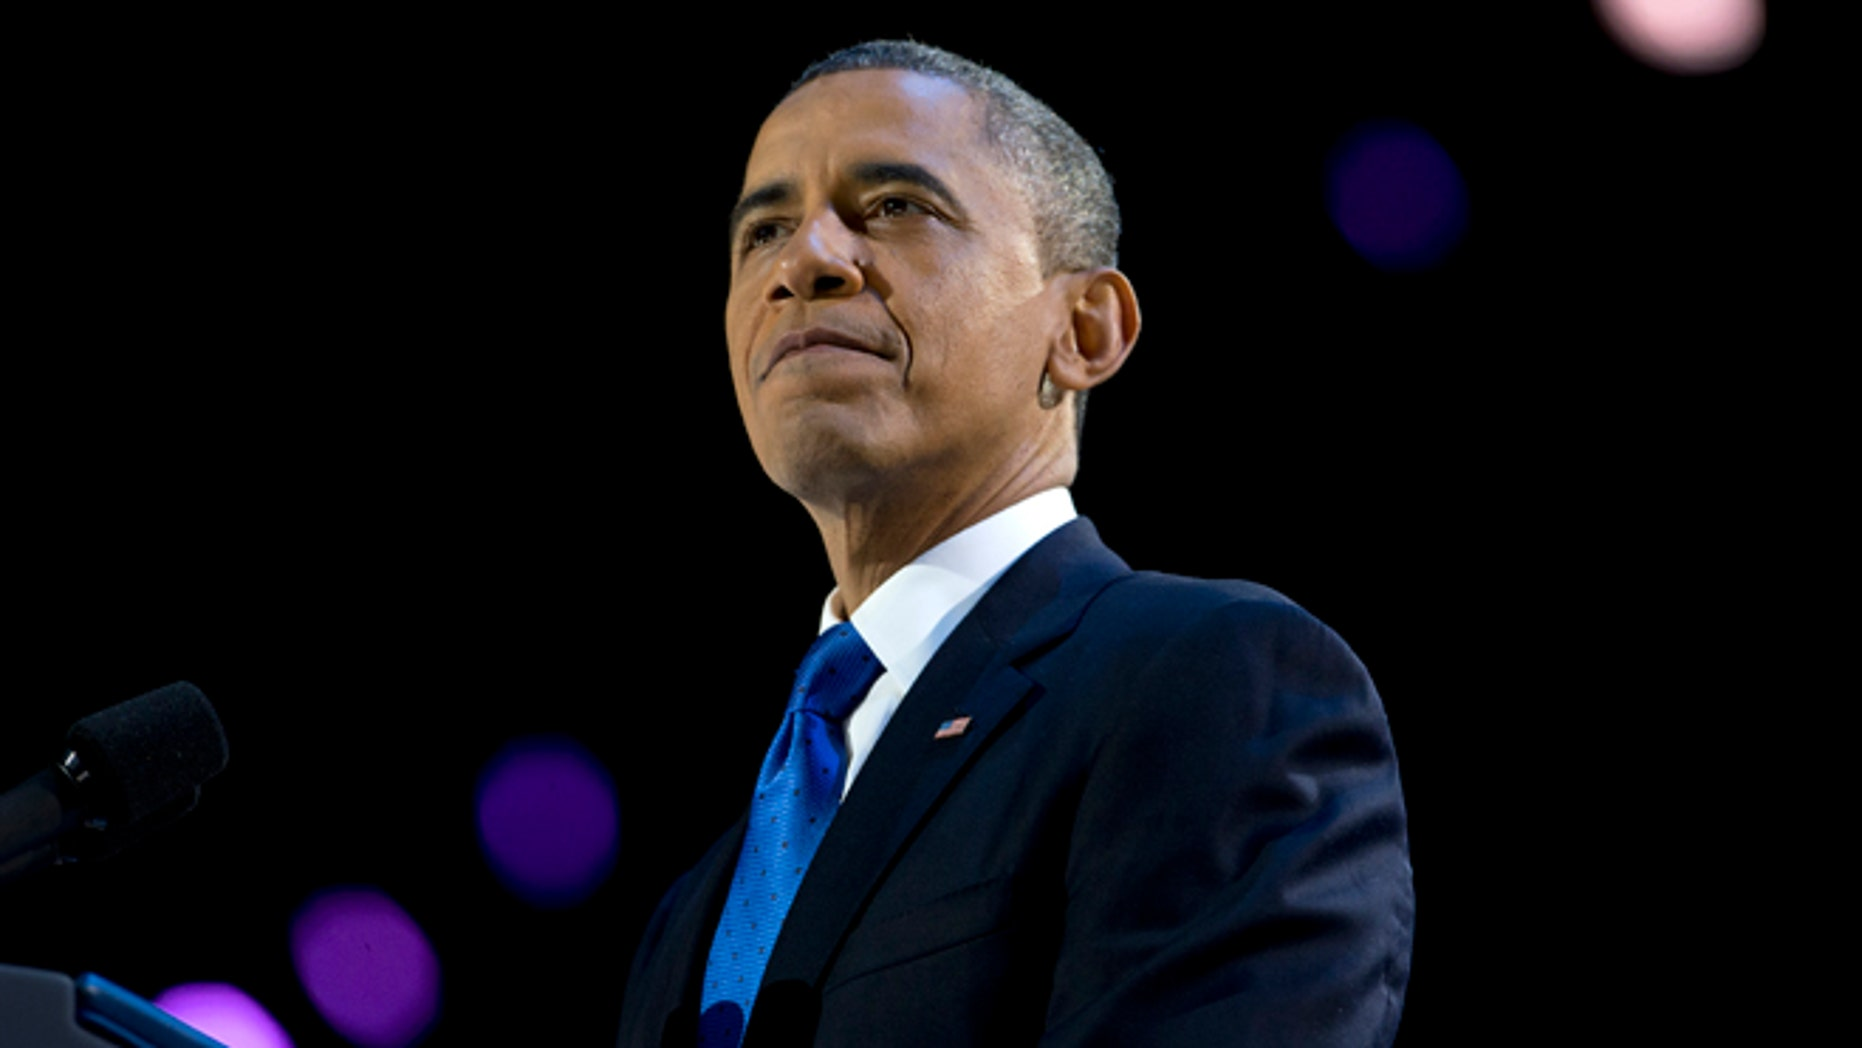 Nov. 7, 2012: President Barack Obama speaks at the election night party at McCormick Place in Chicago.